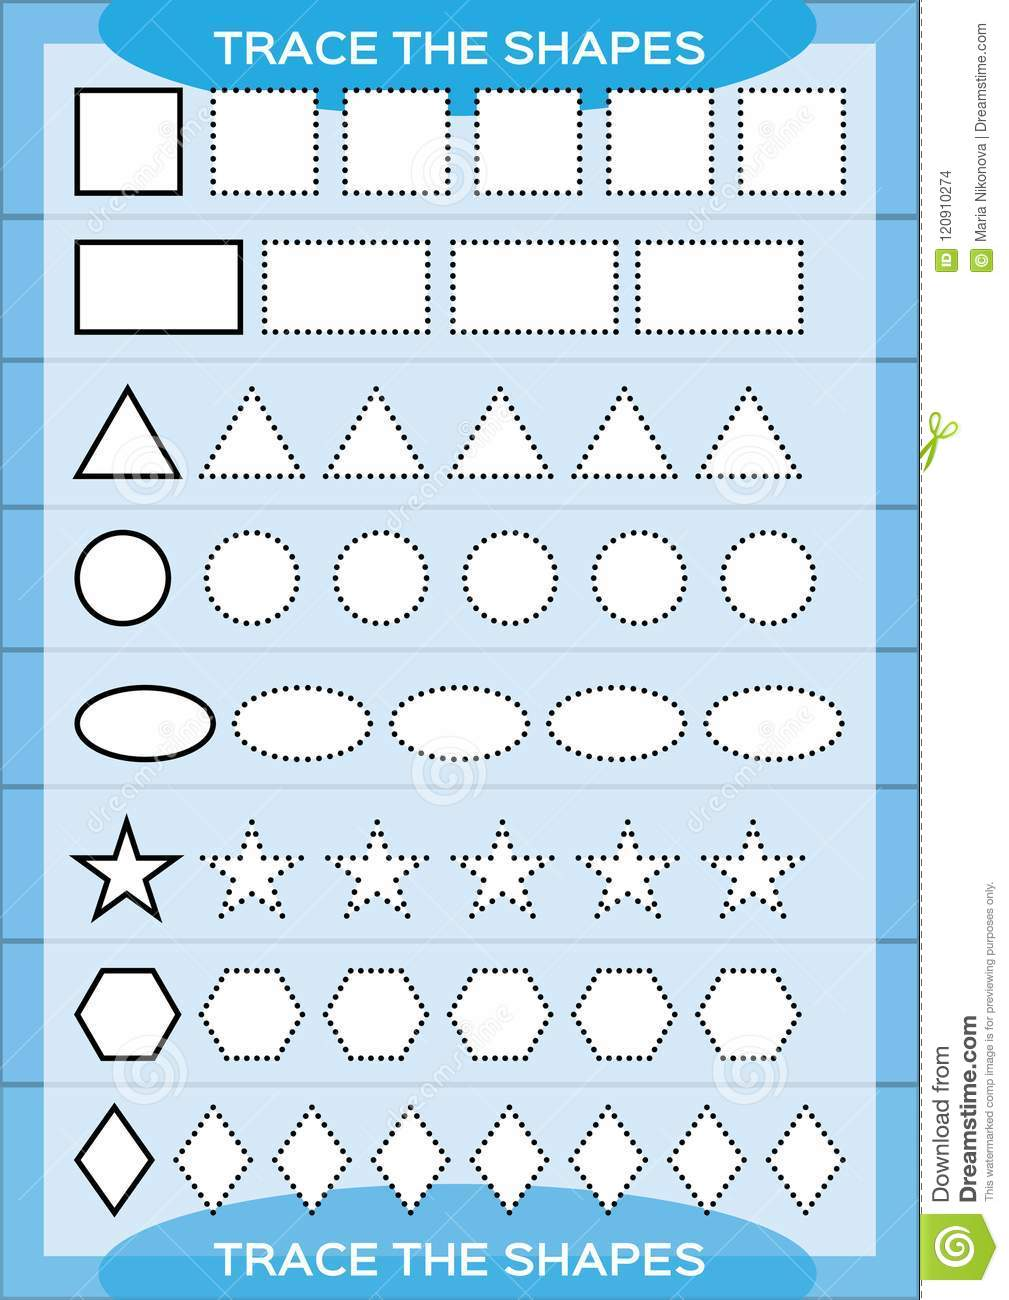 trace the shapes kids education preschool worksheet basic writing kids doing worksheets. Black Bedroom Furniture Sets. Home Design Ideas